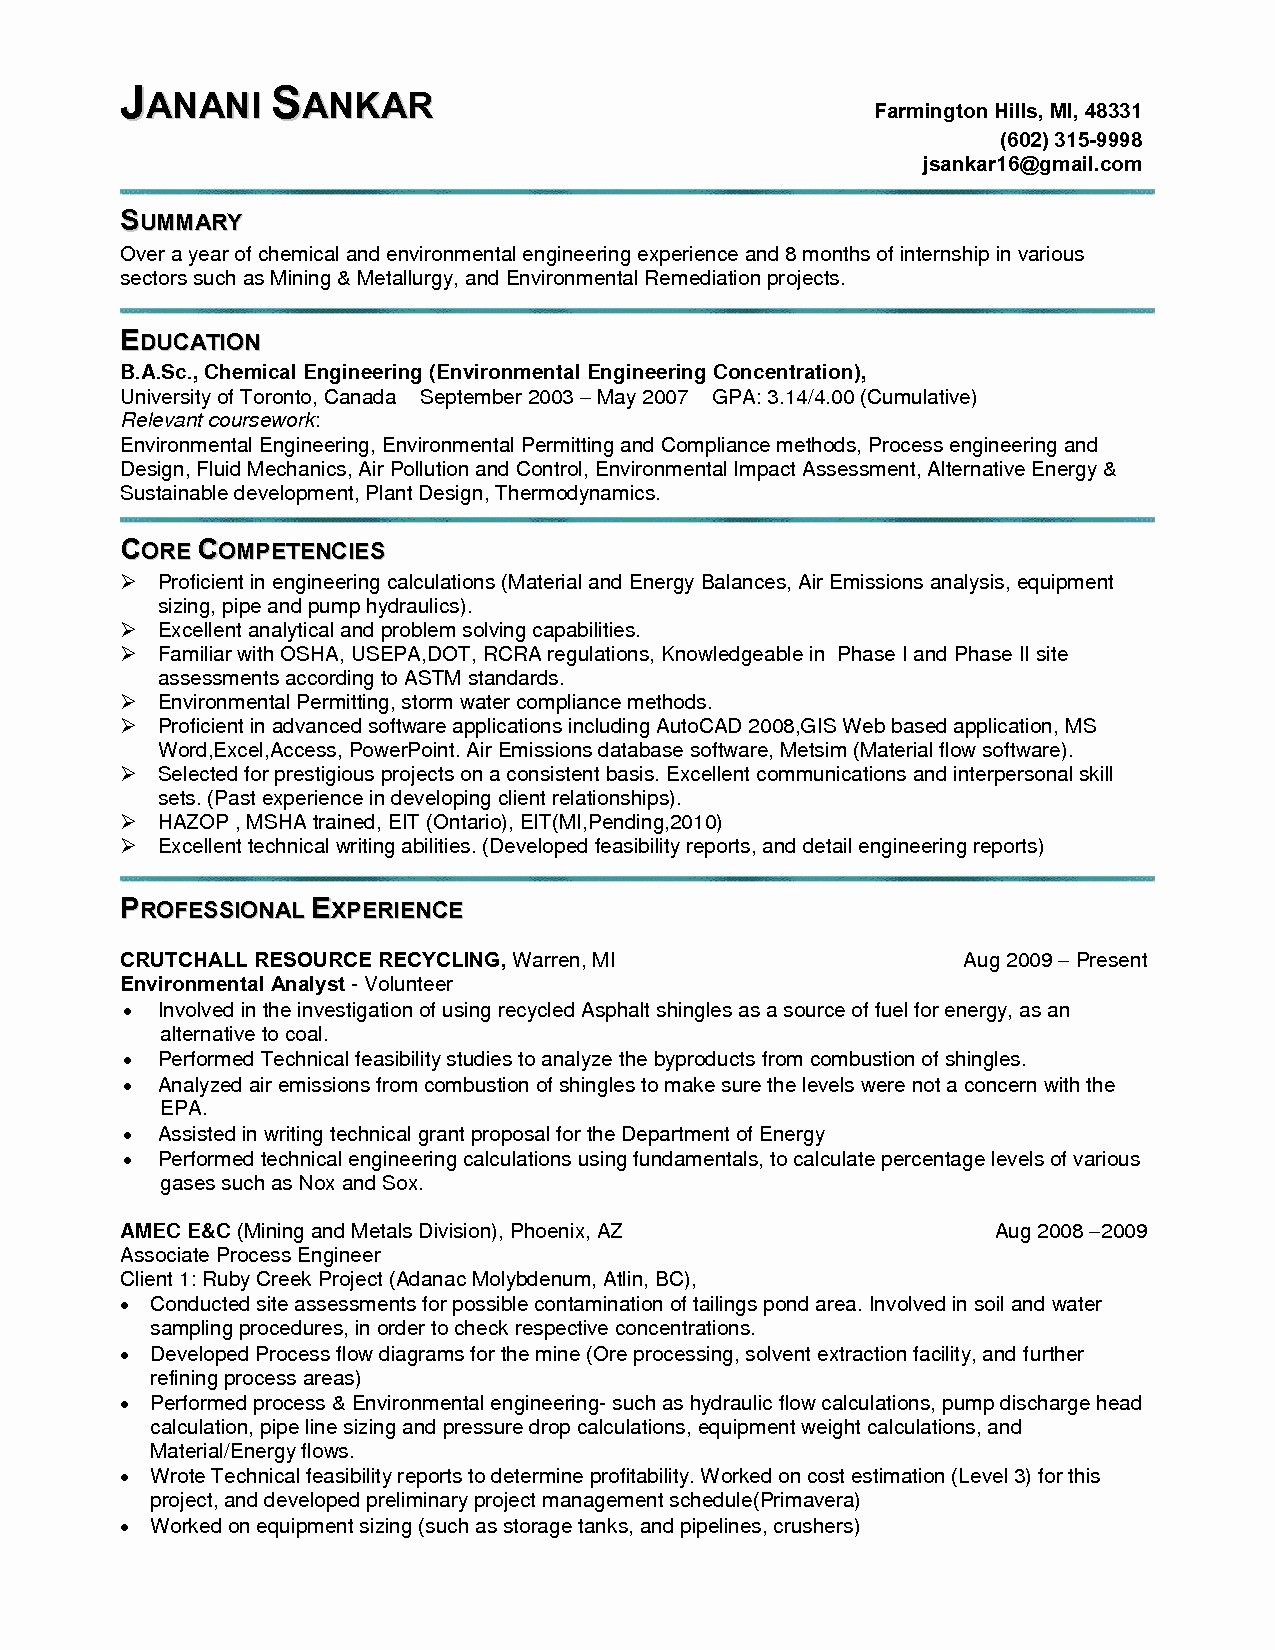 75 Awesome Photography Of Example Resume For Internship In Engineering Check More At Https Www Ourpetscrawley Com 75 Awesome Photography Of Example Resume For